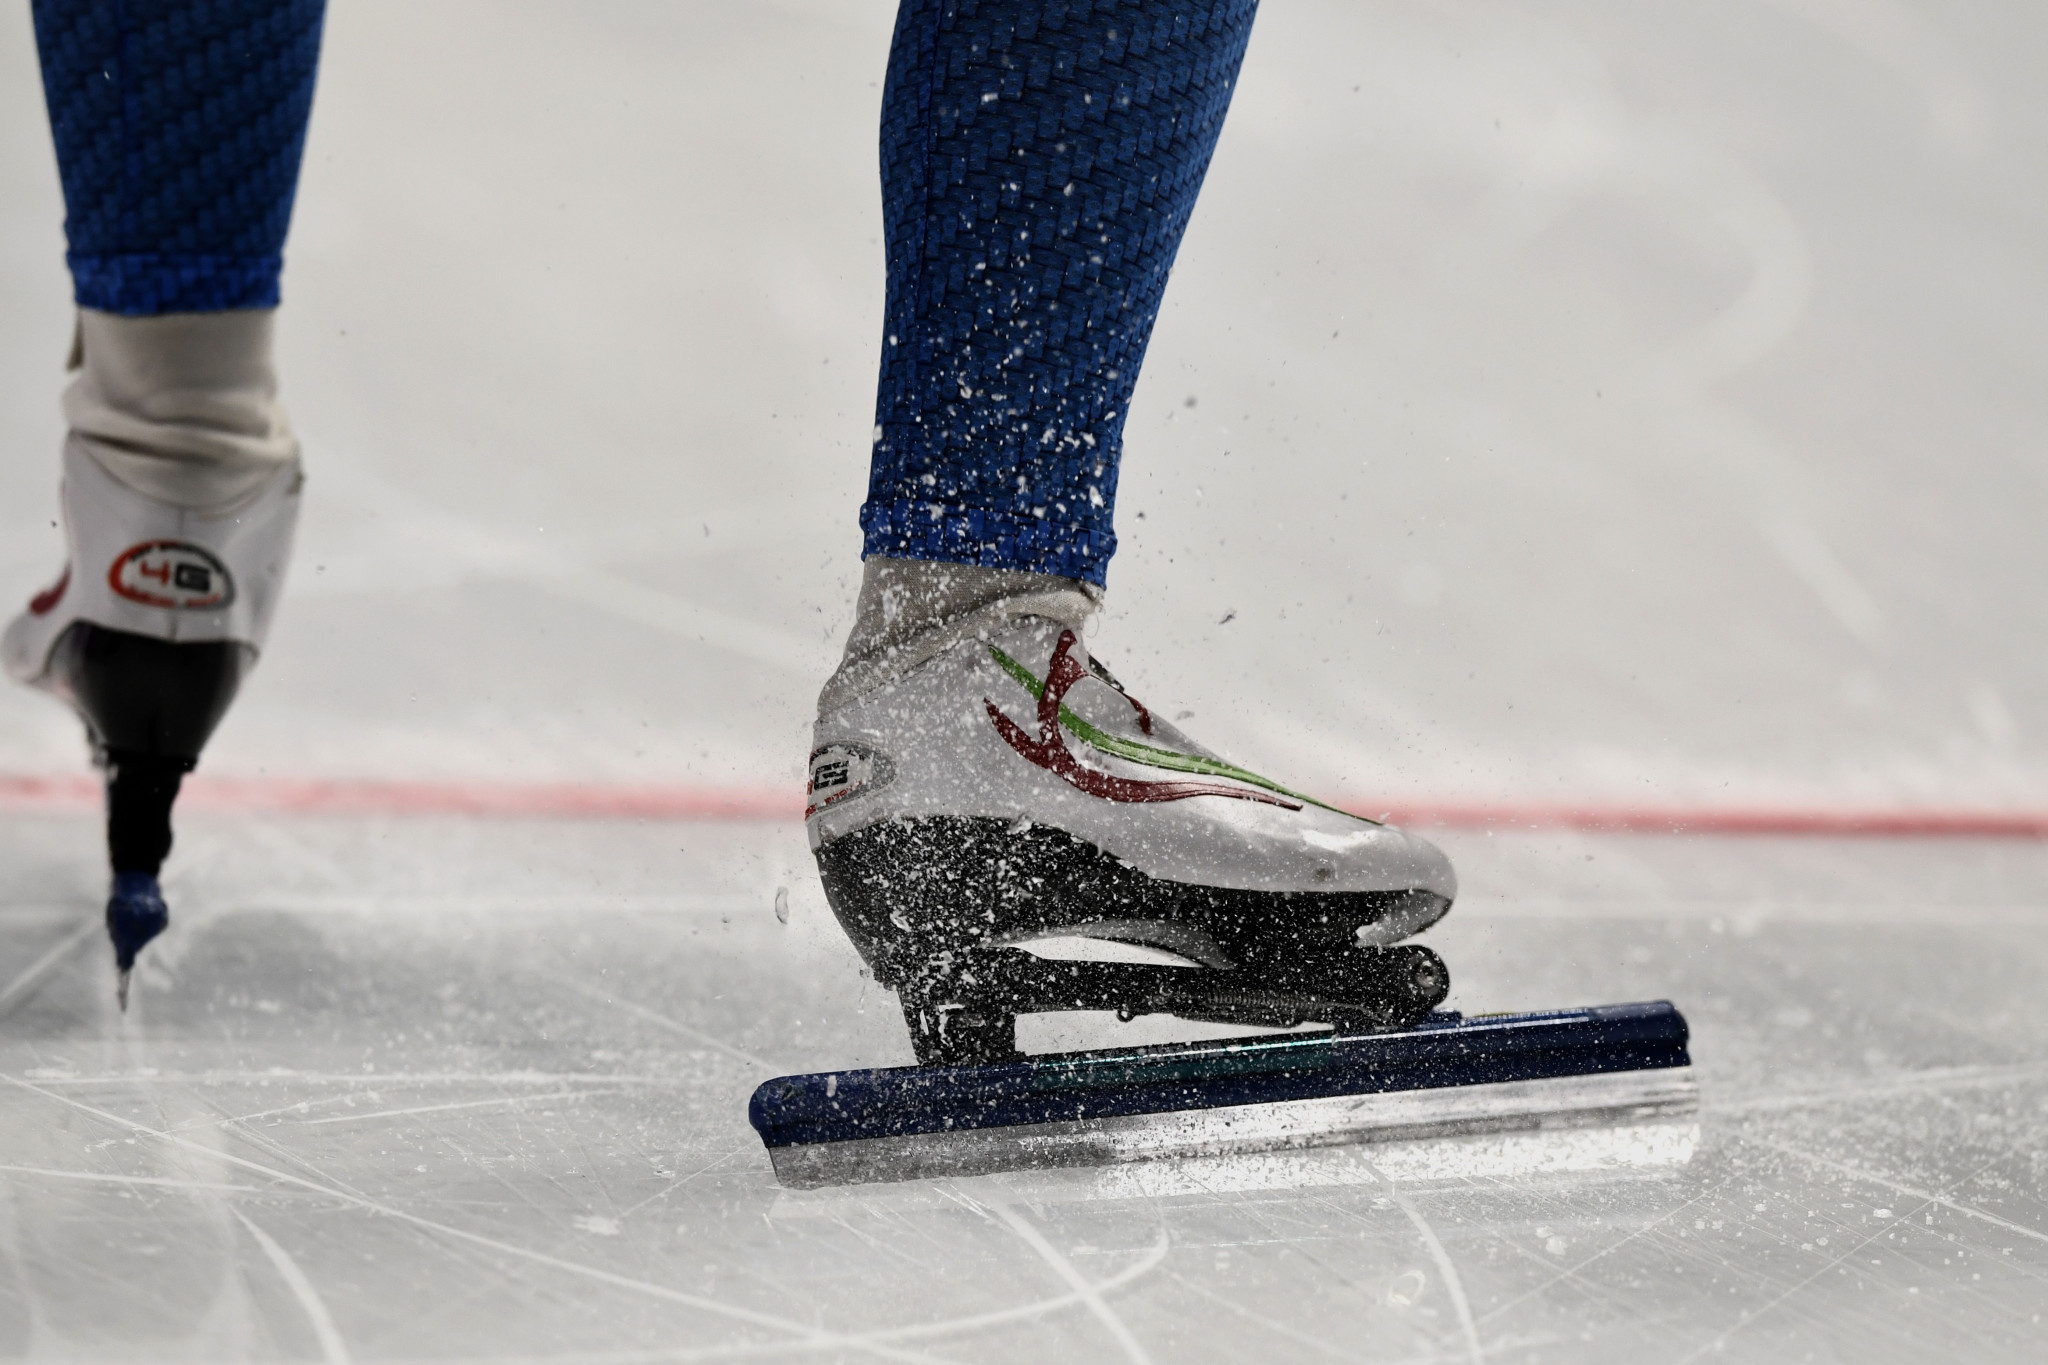 Russian speed skater who medalled at Junior World Championships dies age 23